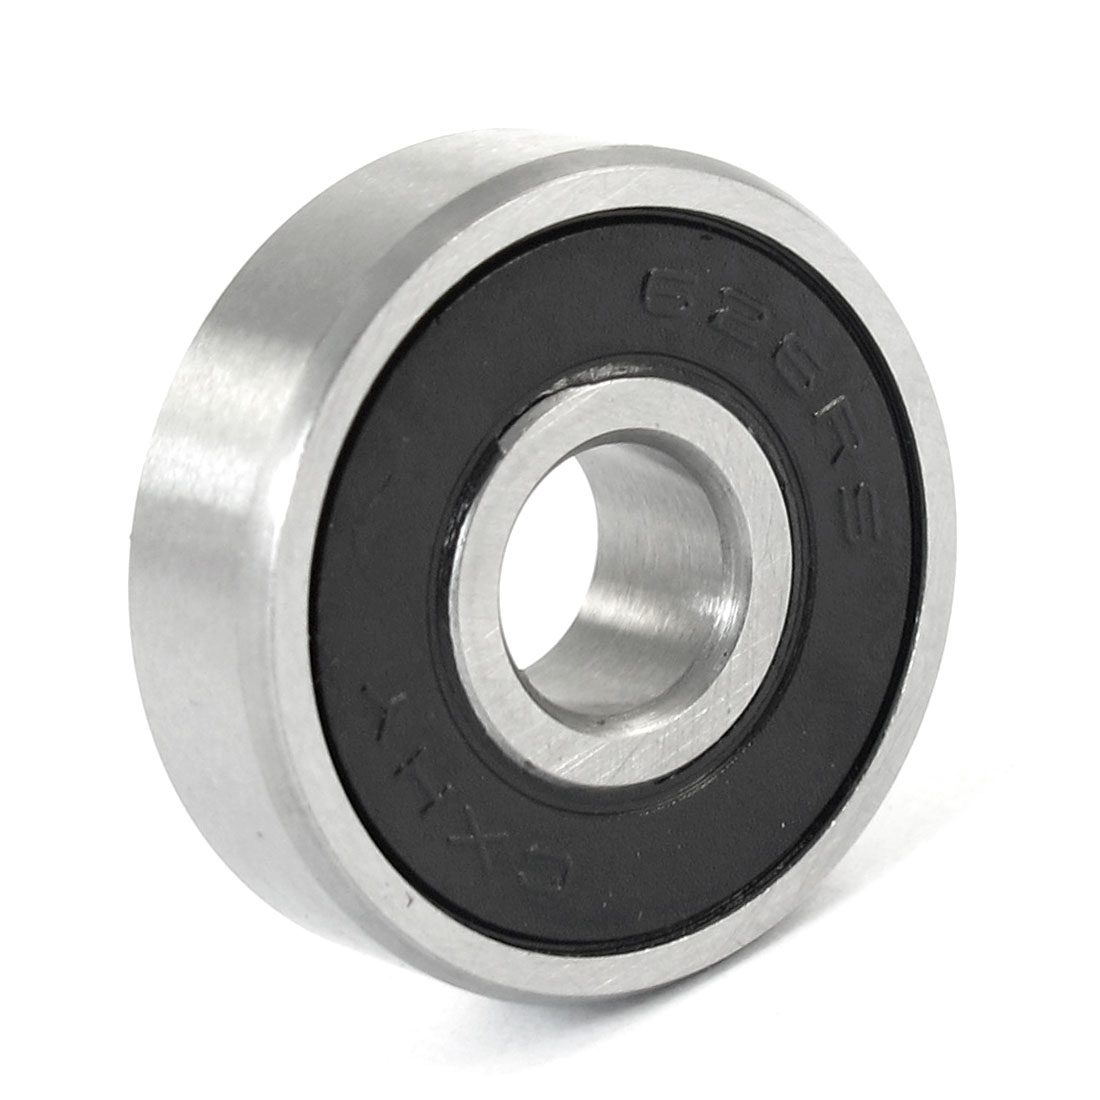 20mm x 6mm x 6mm Carbon Steel 626RS Shielded Deep Groove Ball Bearing Black